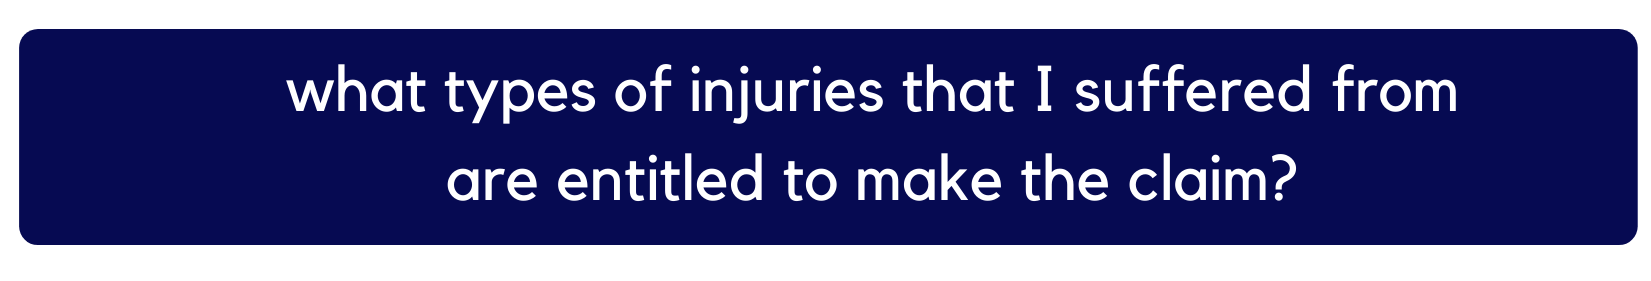 what types of injuries that i suffered from are entitled to make the claim?